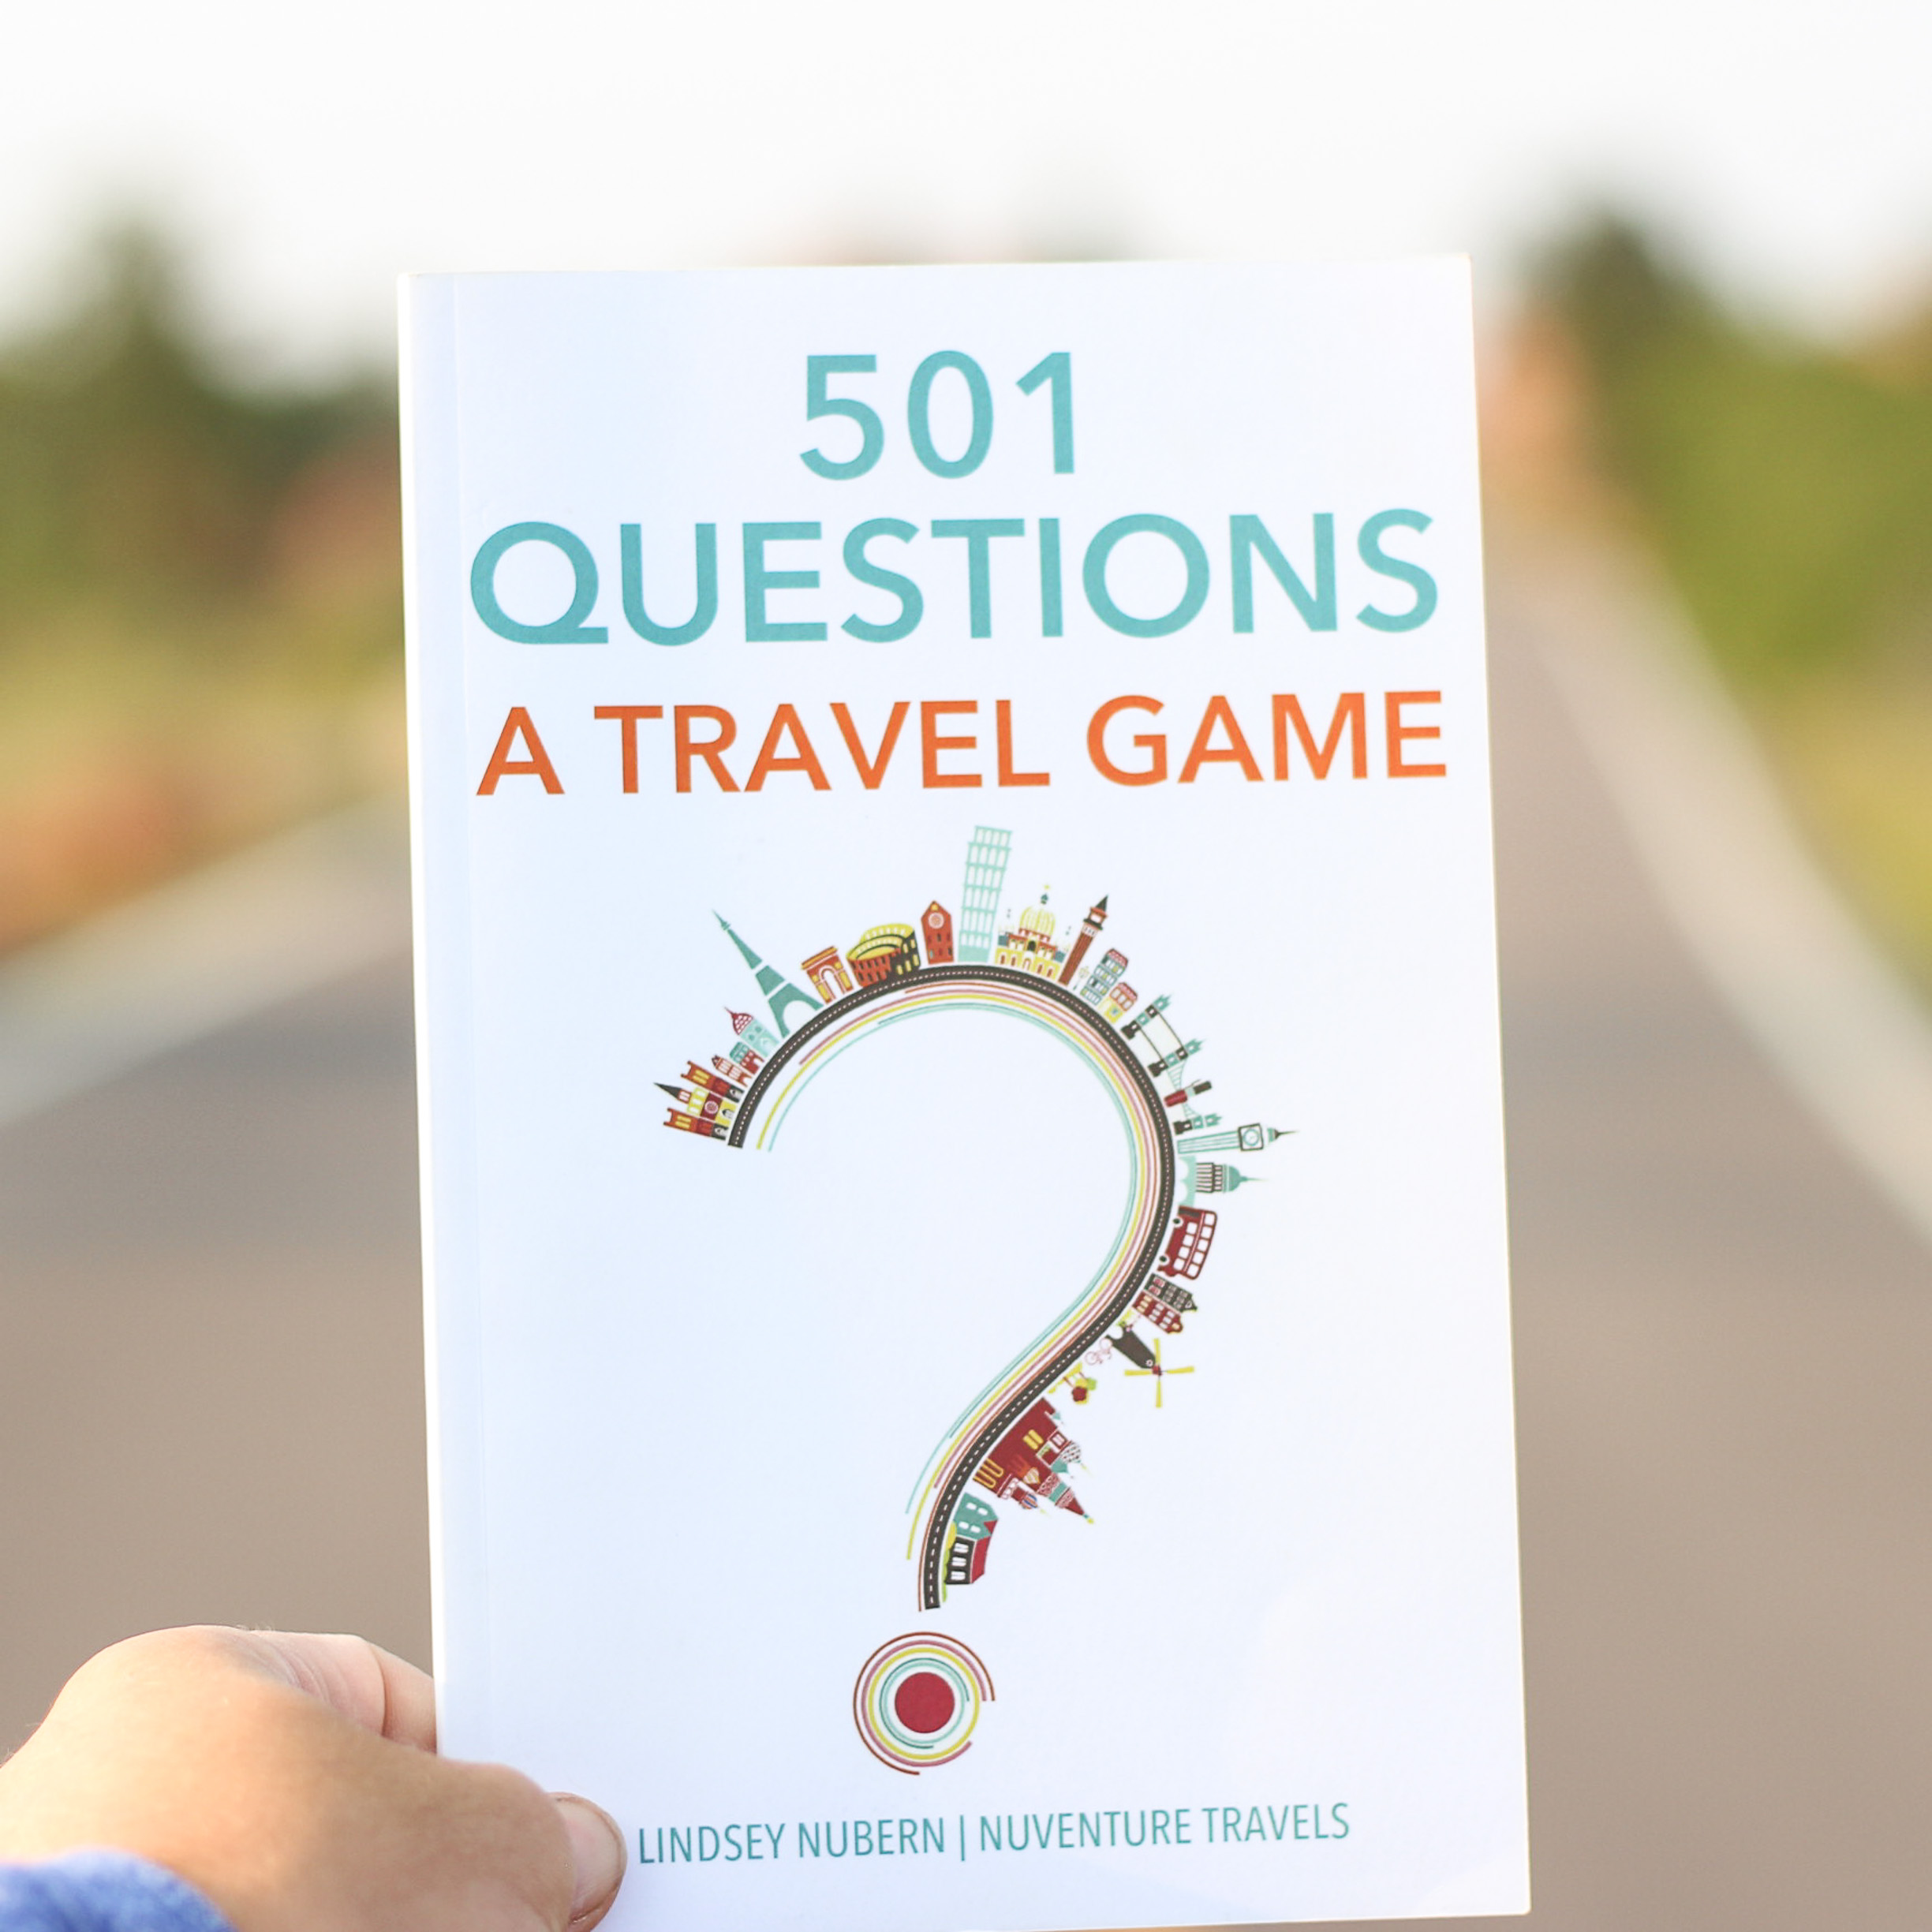 501 Questions A Travel Game by Lindsey Nubern of NuventureTravels.com